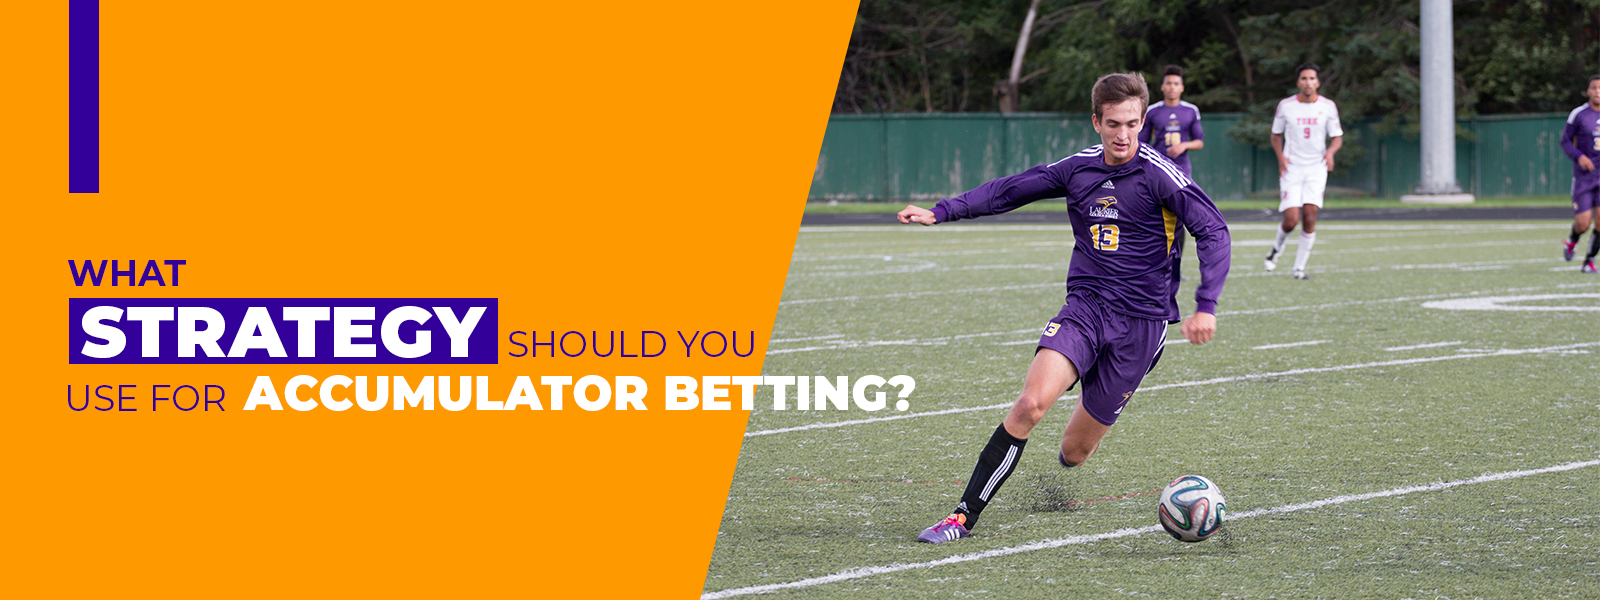 What strategy should you use for accumulator betting?